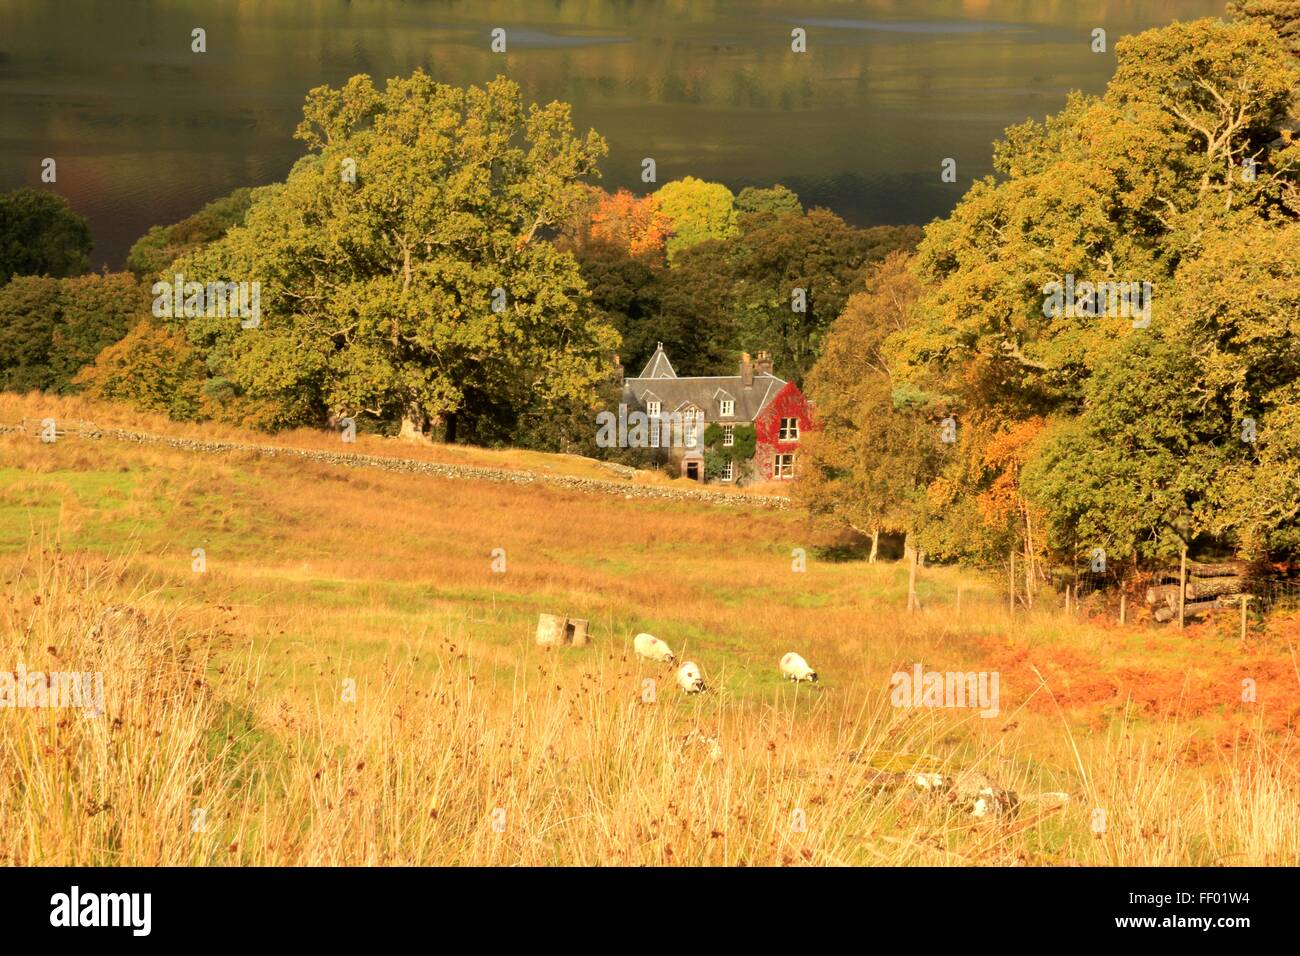 Sheep graze in front of a red ivy covered house in front of Loch Earn in the scottish highlands - Stock Image